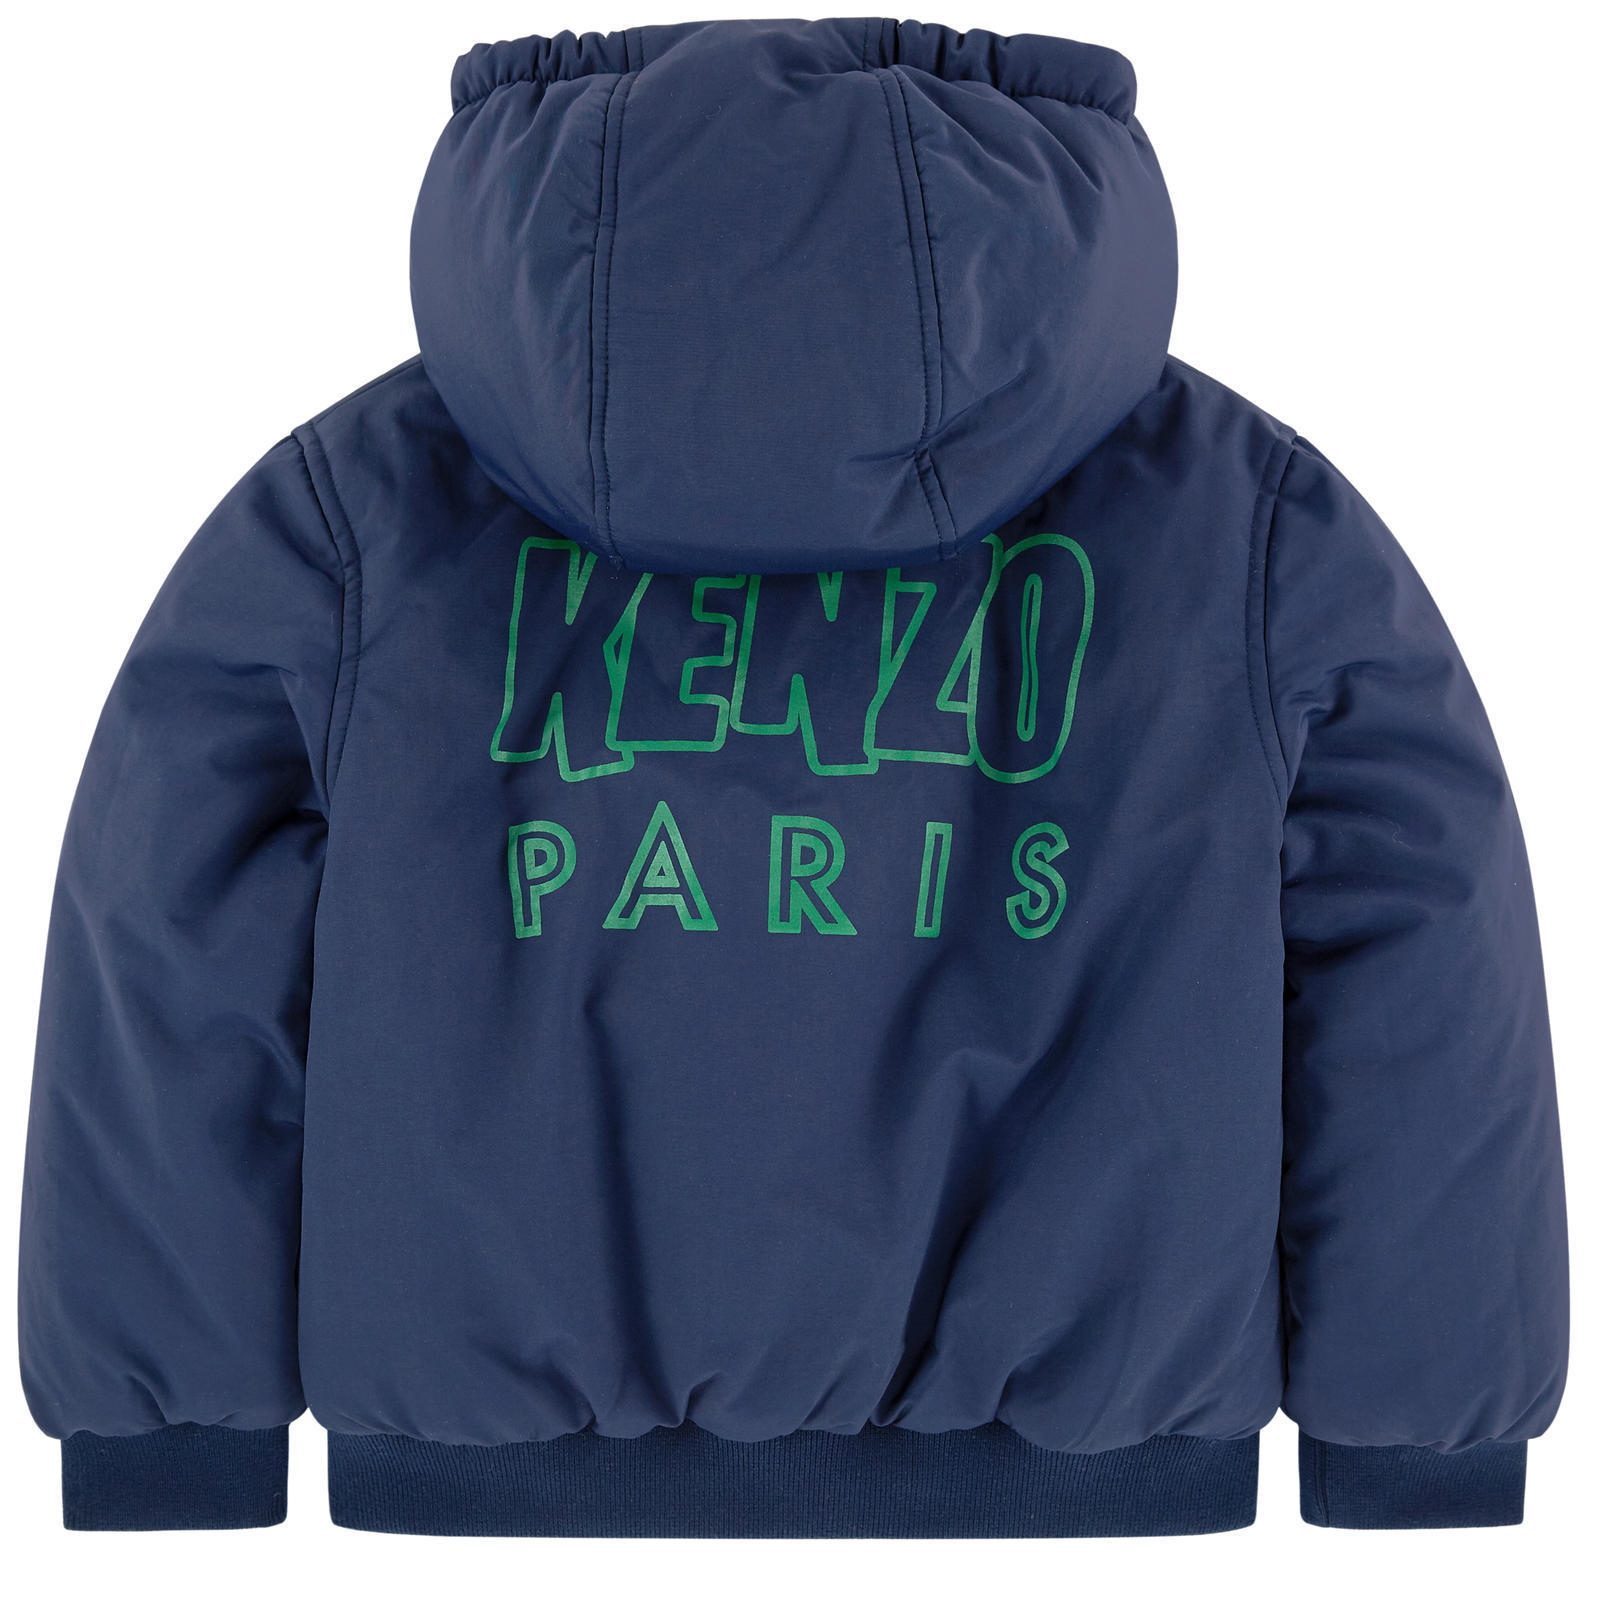 KENZO★2017AW★ロゴ入リバーシブルブルゾン★8~12Y